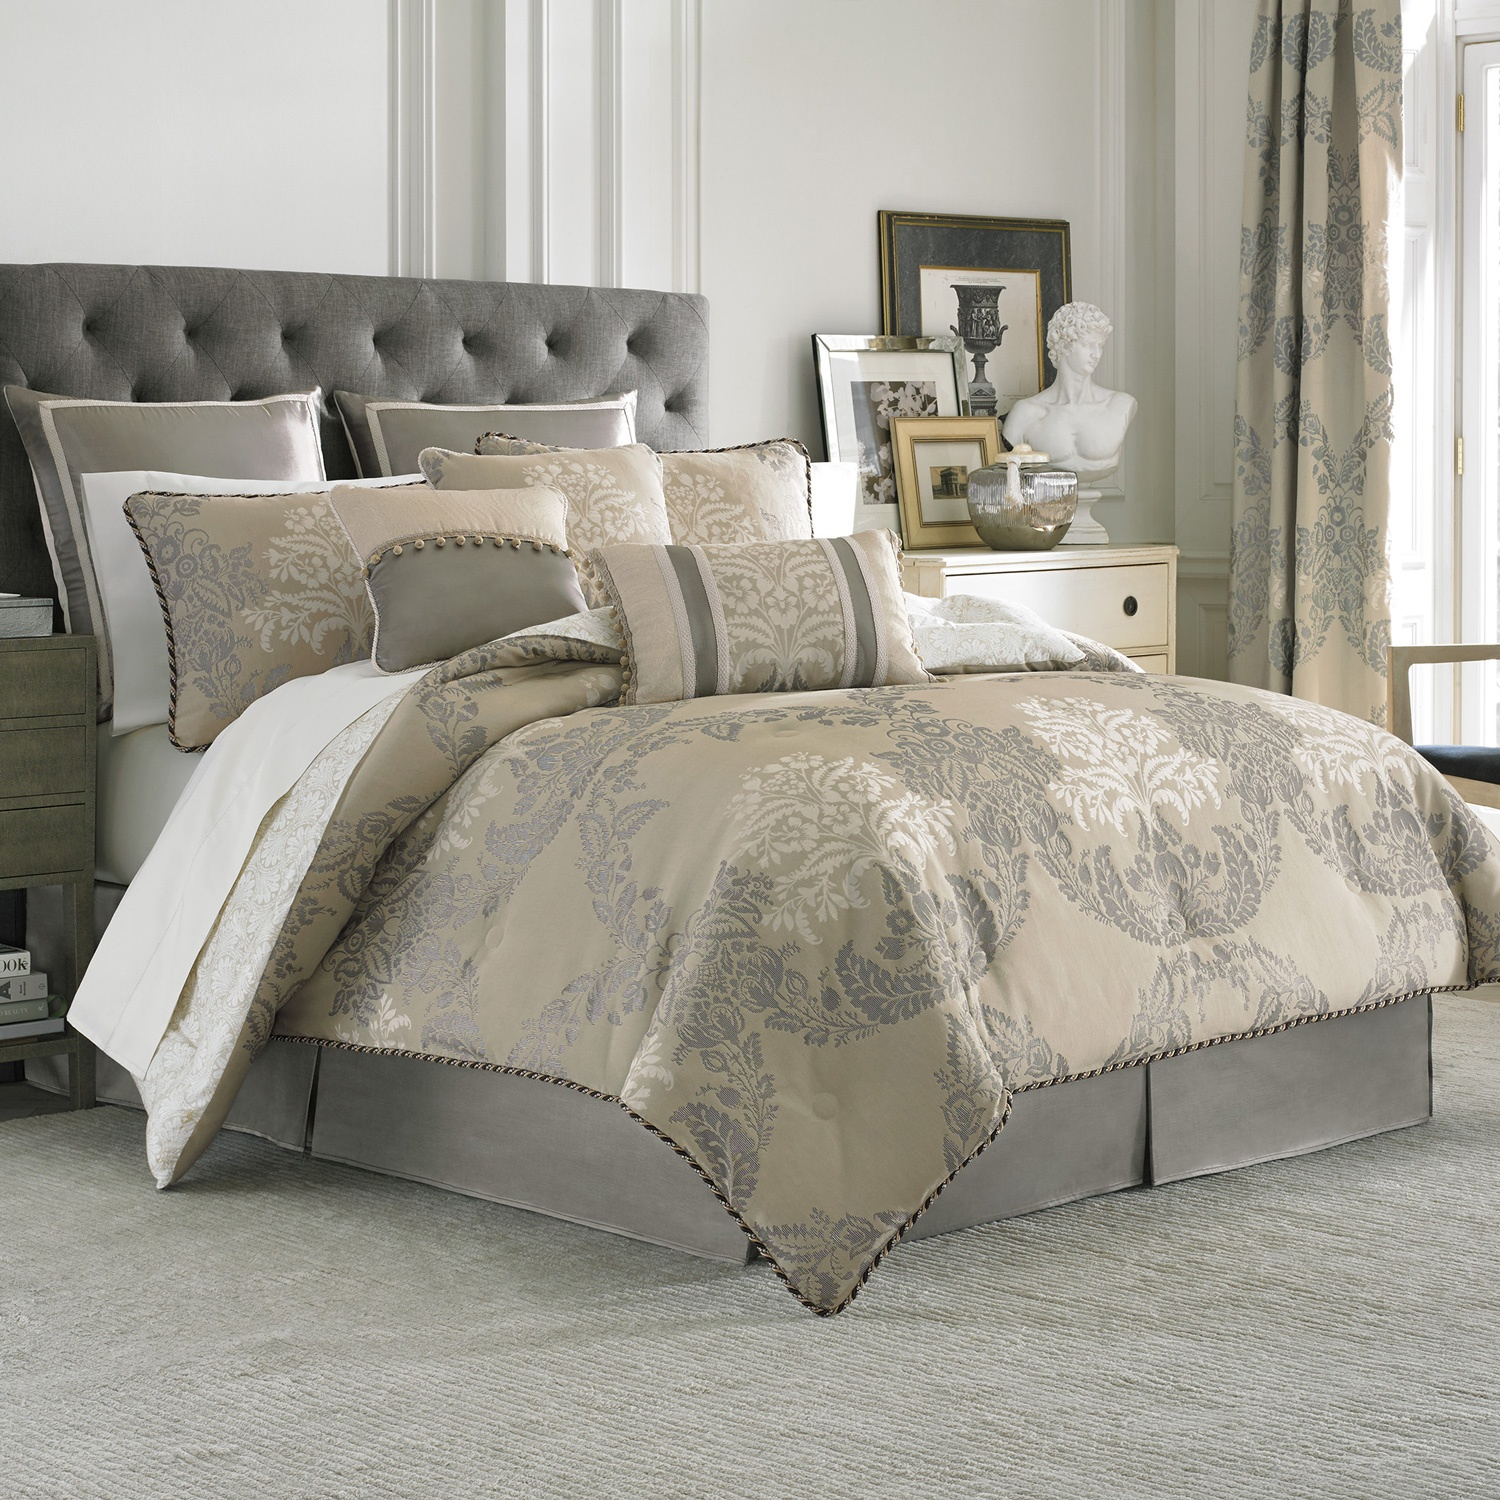 California King Bed Comforter Sets Bringing Refinement in Your